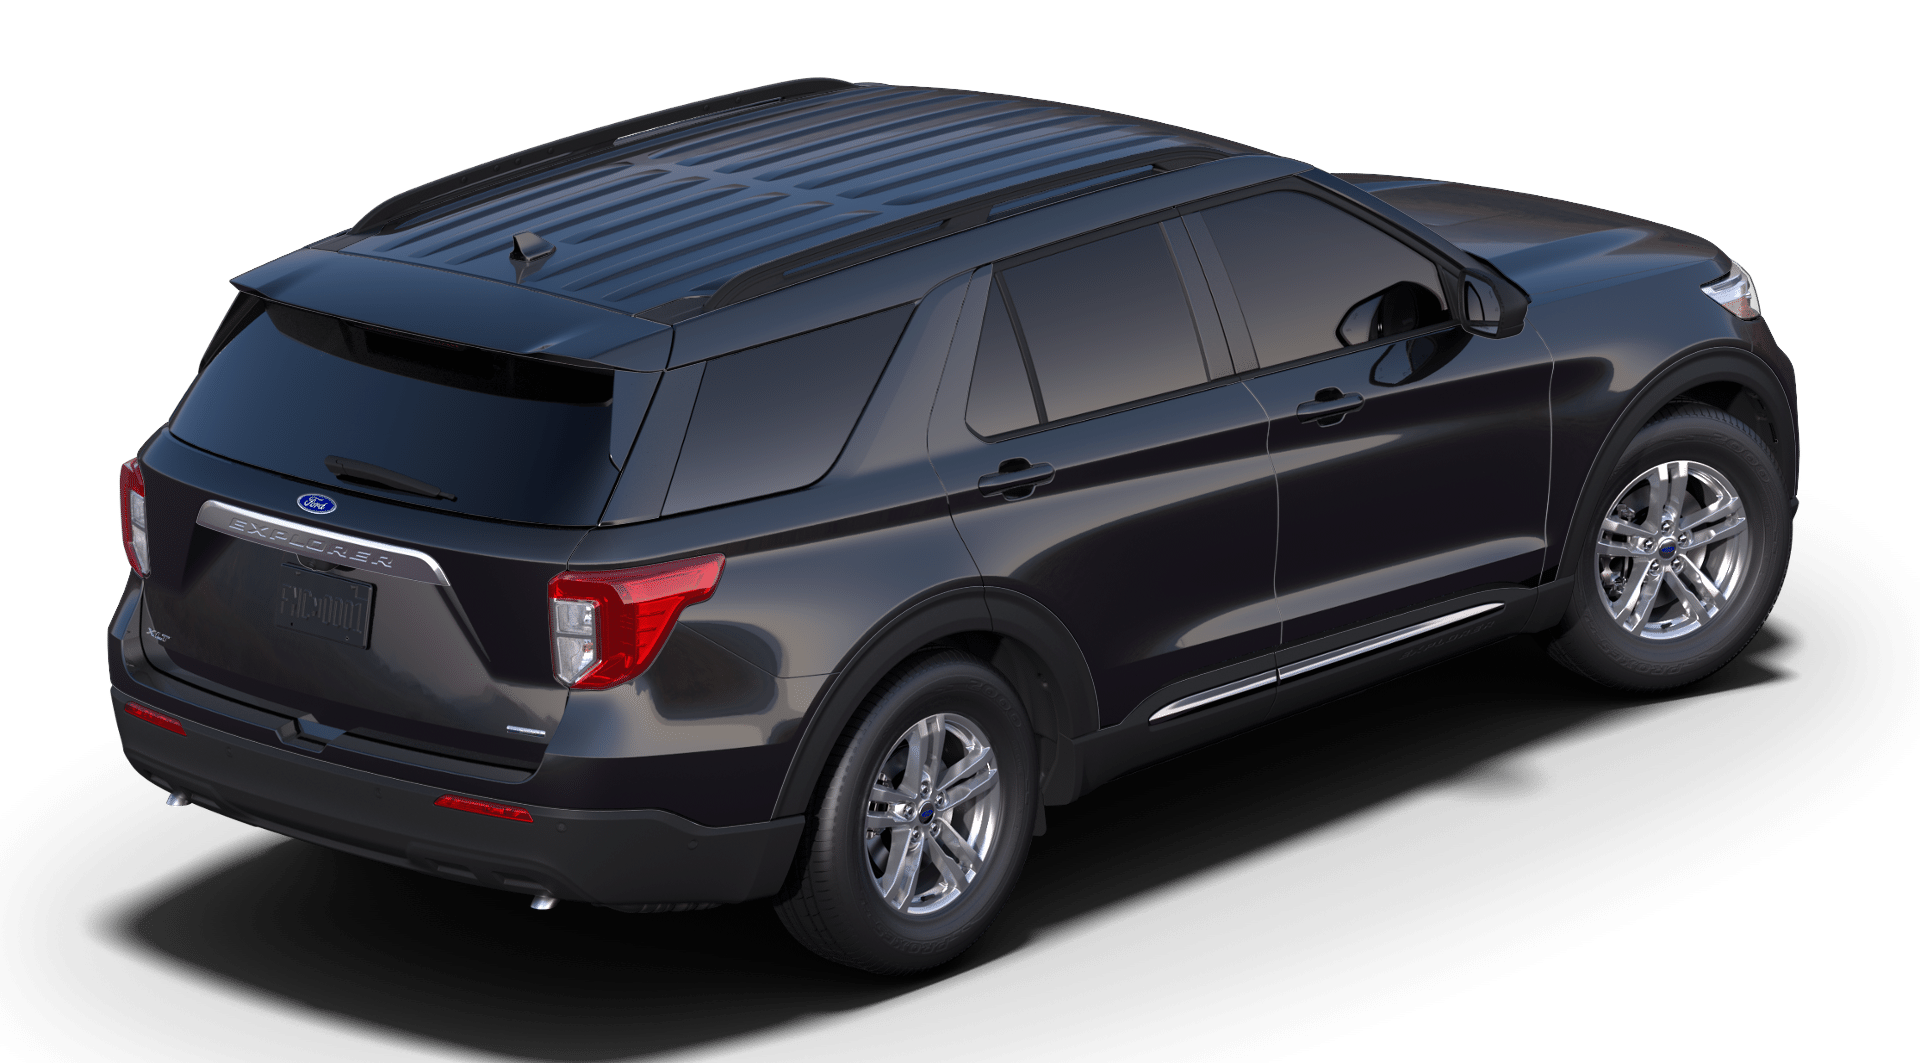 2020 Ford Explorer XLT Black Rear Exterior Picture.png